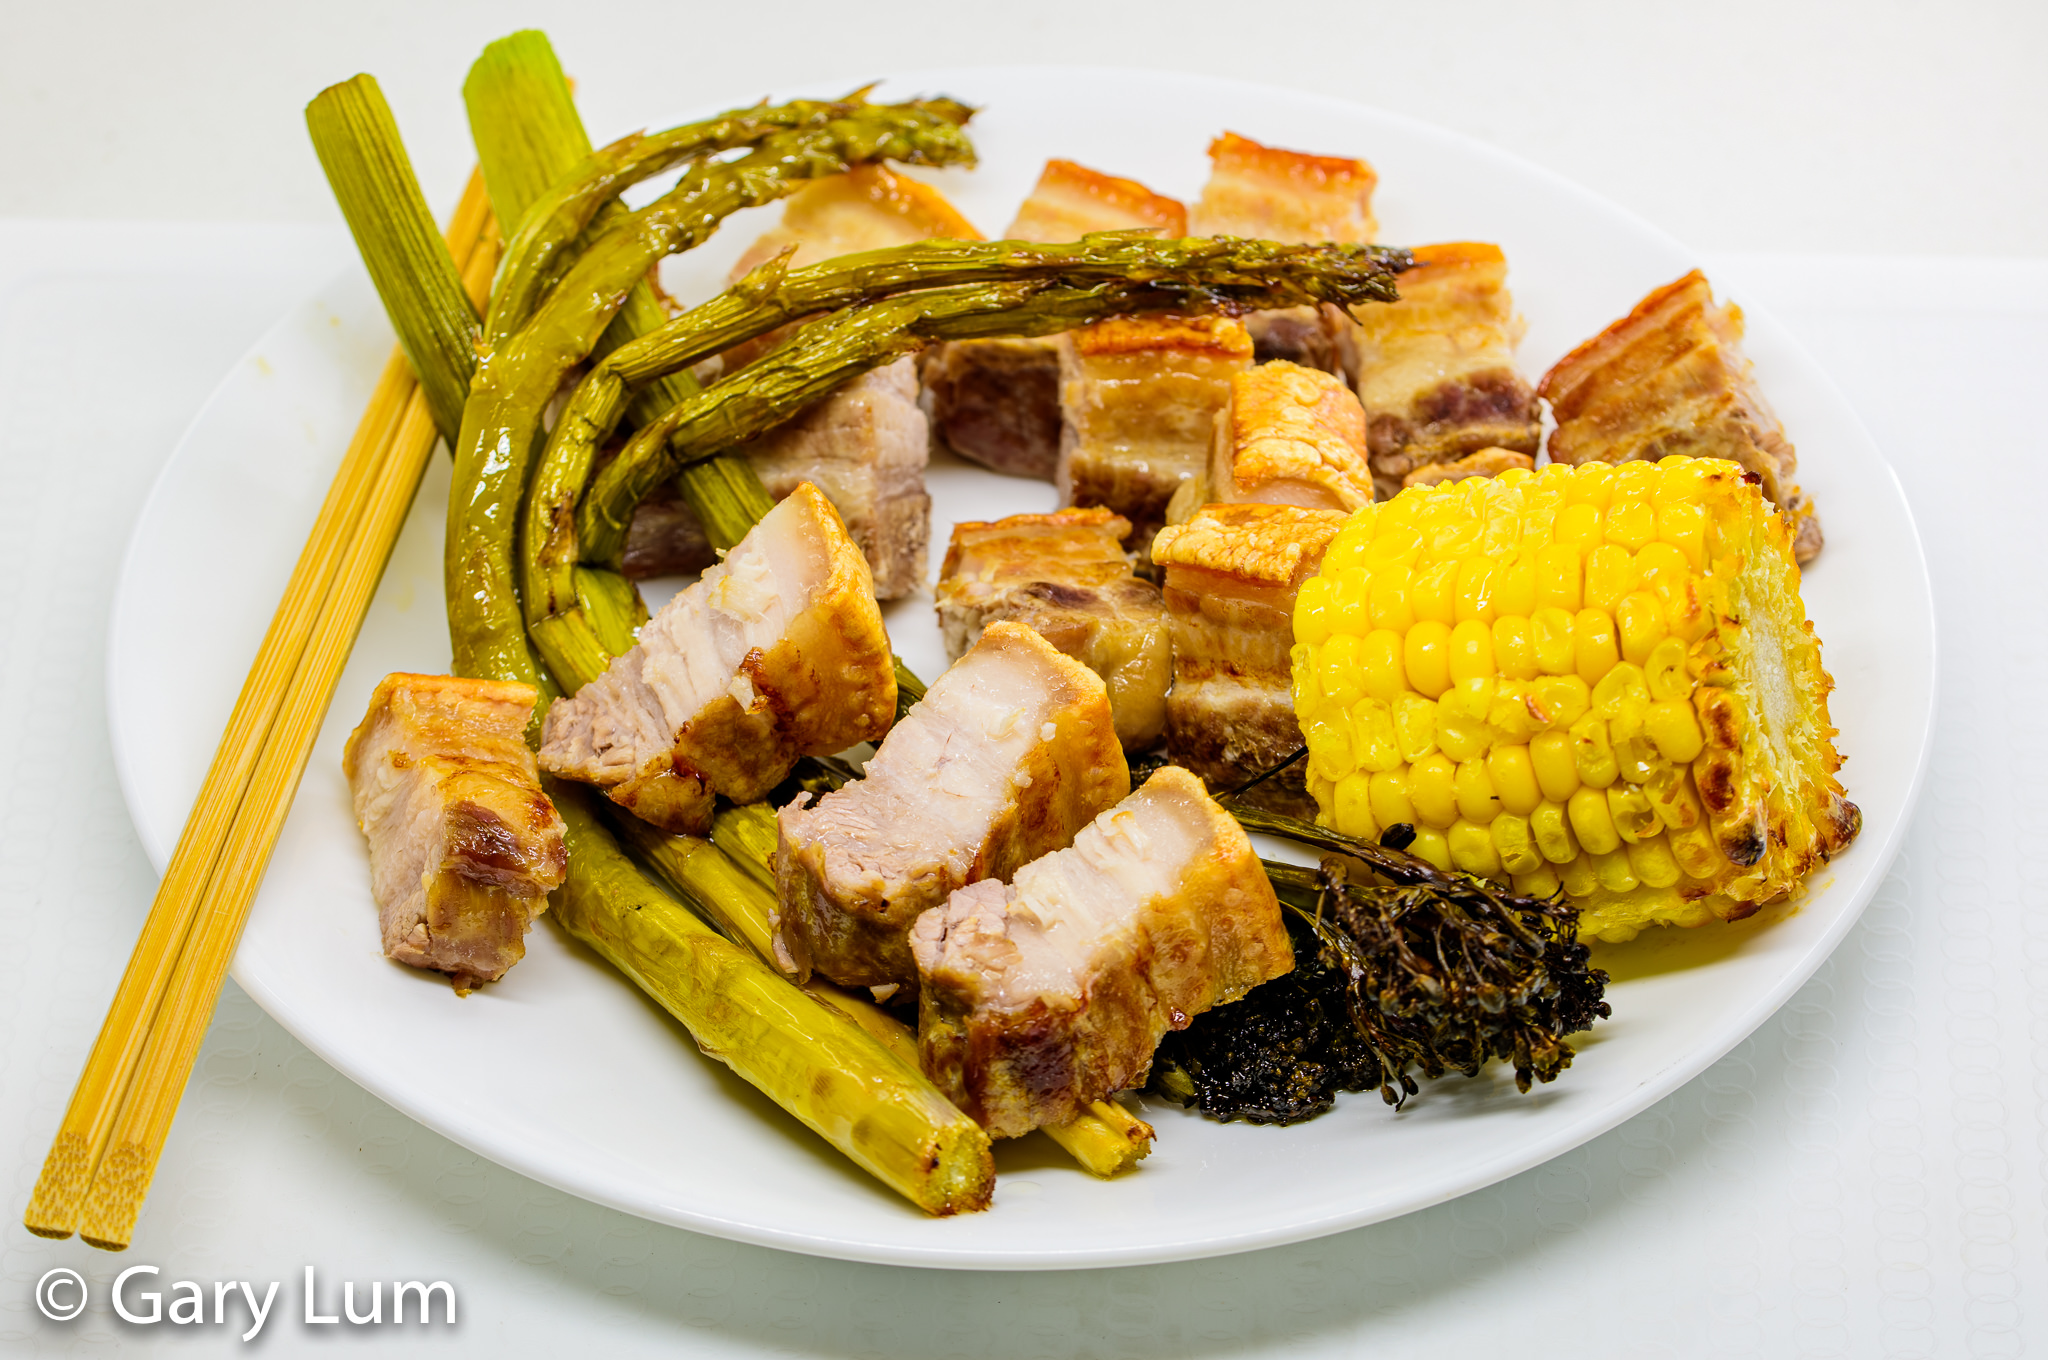 Oven-baked pork belly with broccolini, asparagus, and corn. Gary Lum.